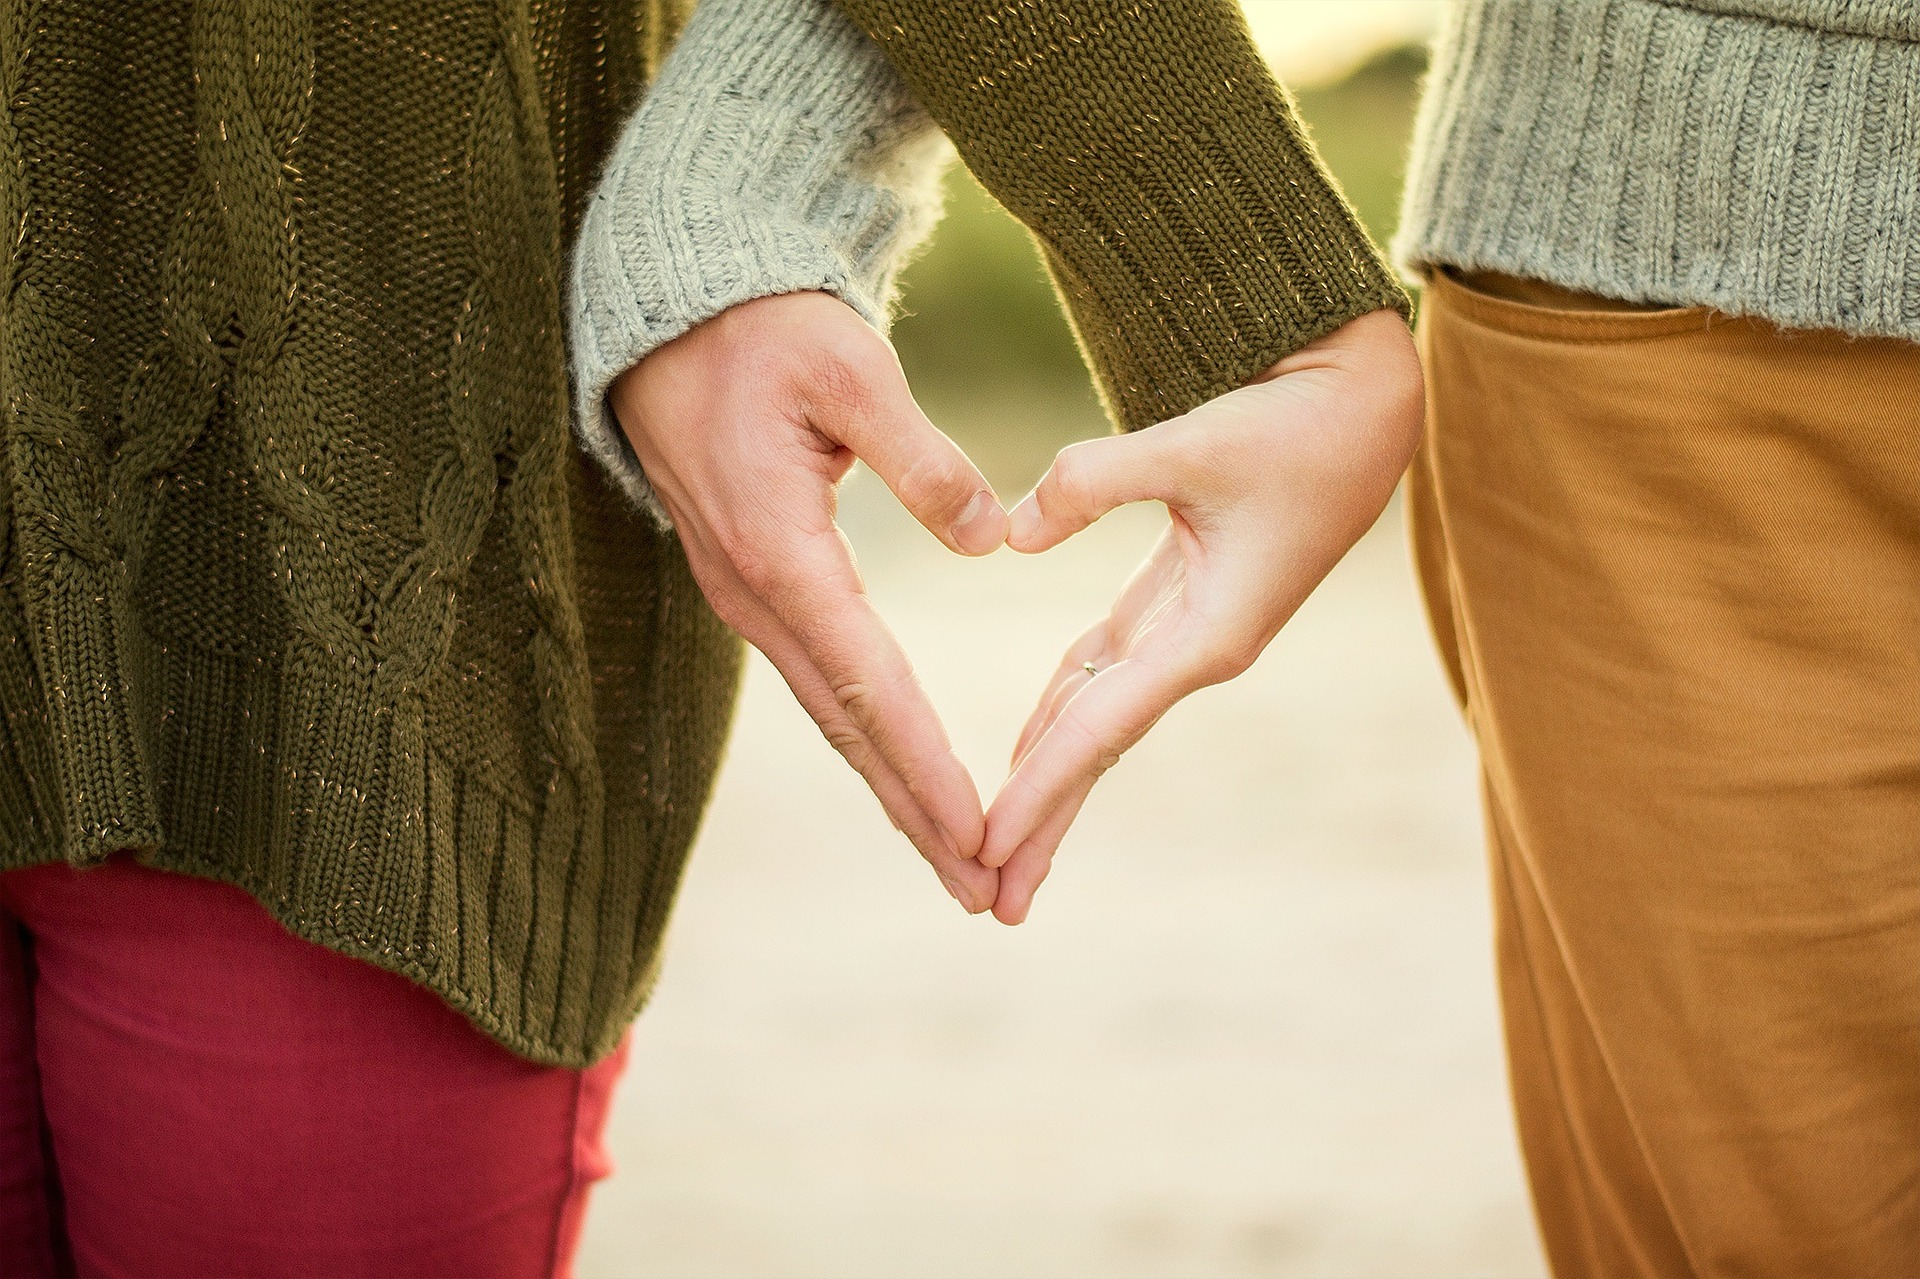 Two people putting their hands together to form a heart